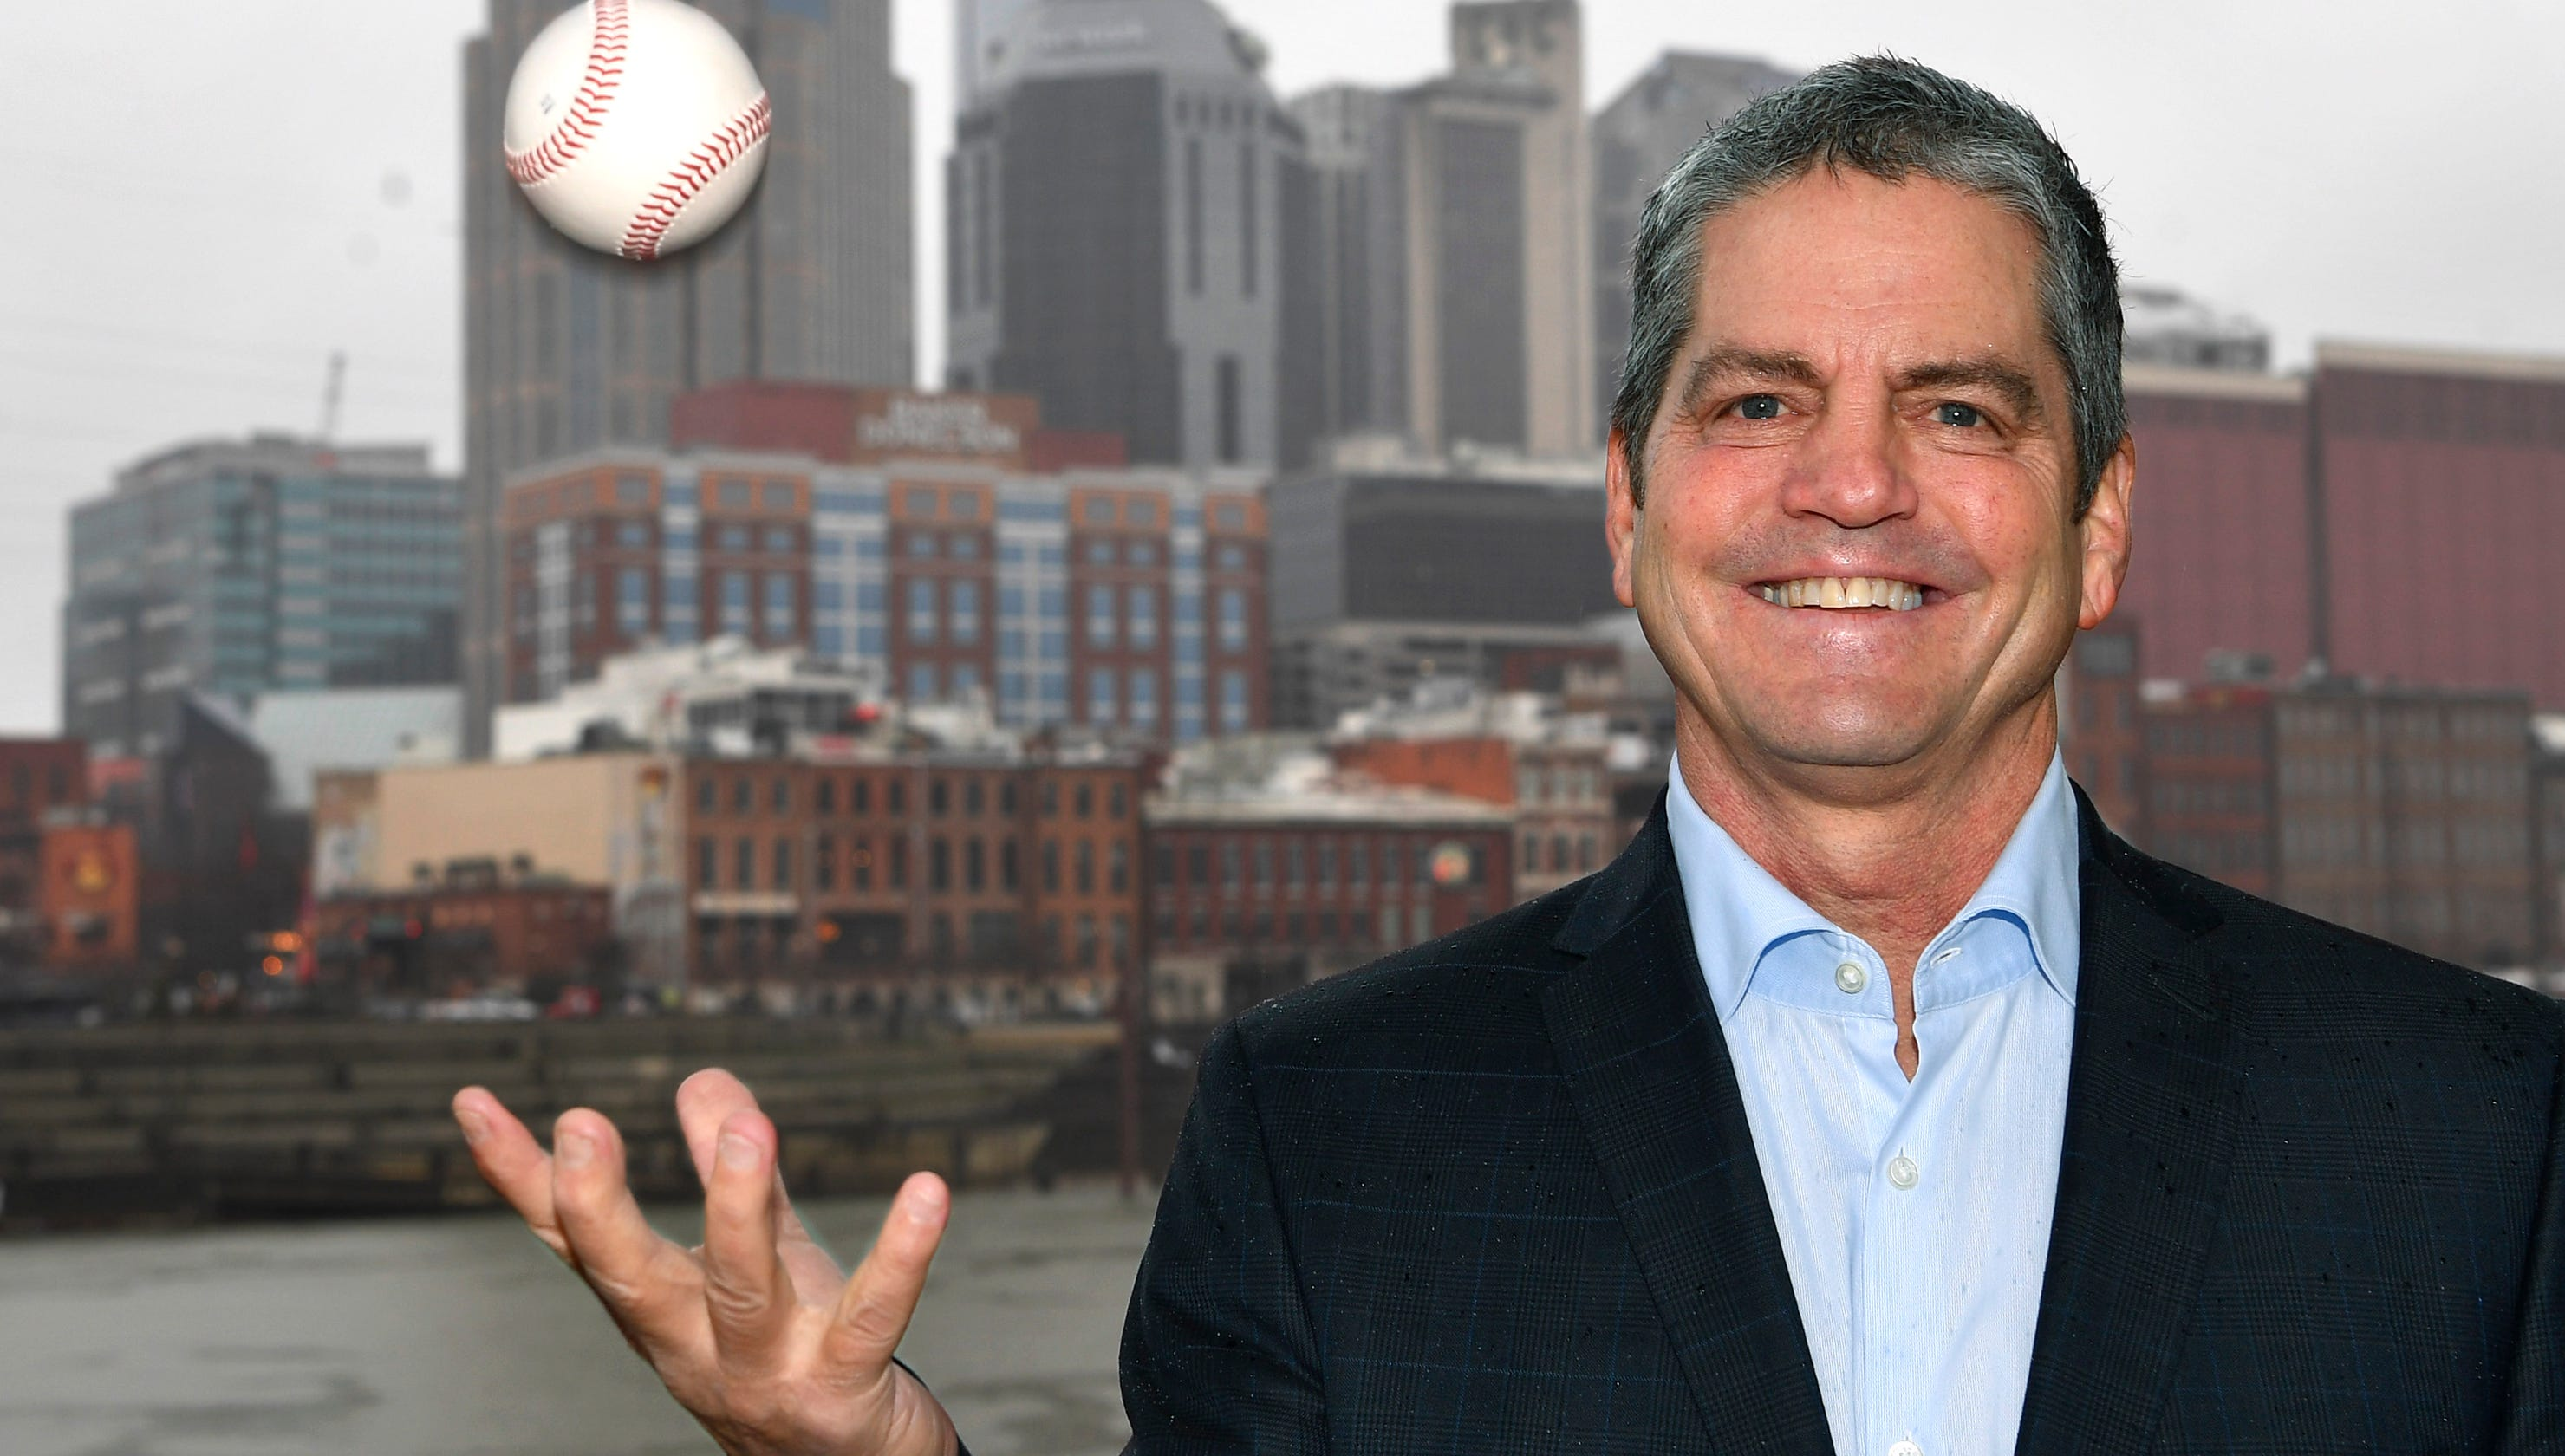 Nashville group meeting with Major League Baseball next week about expansion possibilities